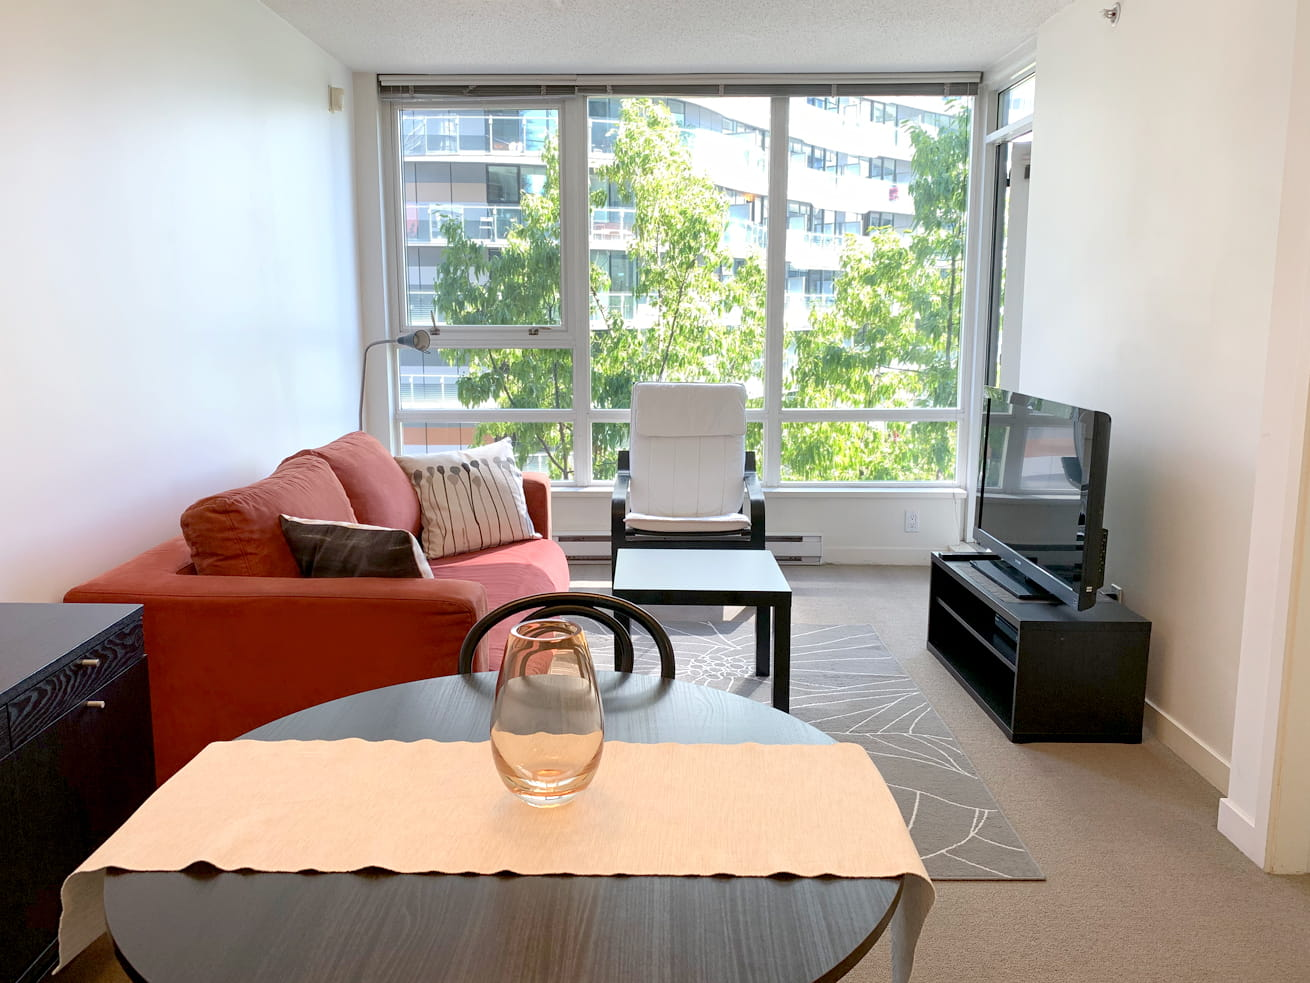 Vancouver downtown apartments max one bedroom den living room